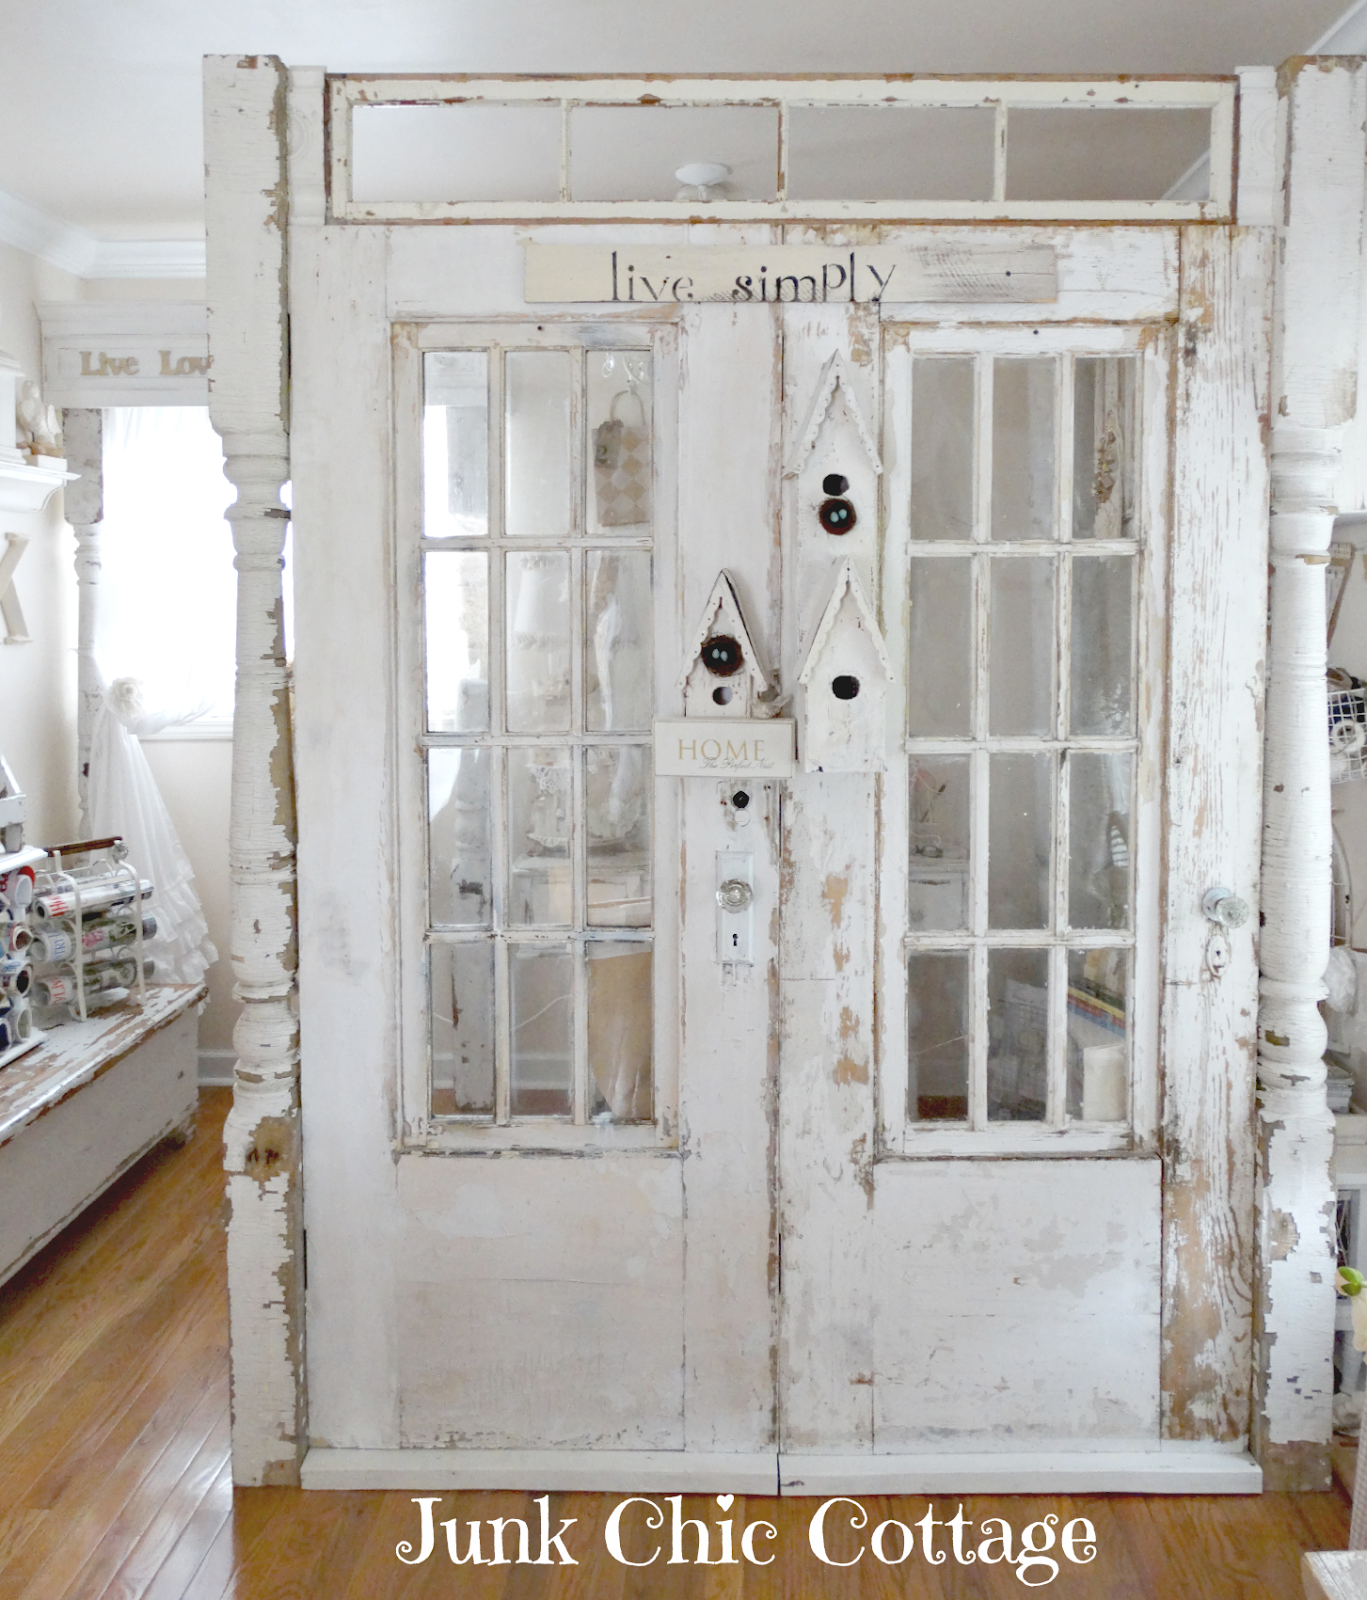 Junk Chic Cottage: Where Bloggers Create 6th Annual Blog Party on Creative  Spaces. Salvaged DoorsOld ... - Junk Chic Cottage: Where Bloggers Create 6th Annual Blog Party On